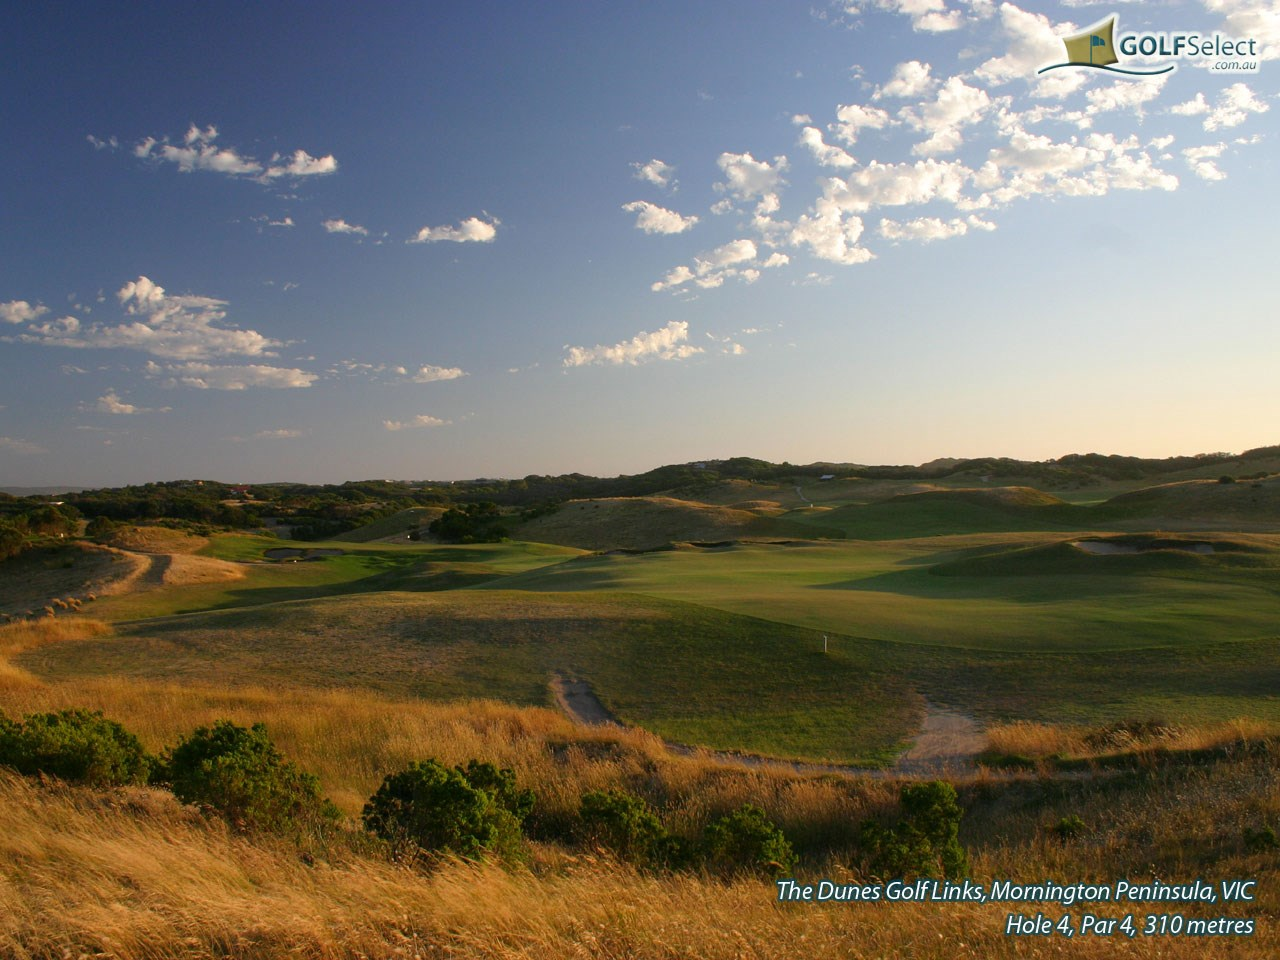 The Dunes Golf Links Hole 4, Par 4, 310 metres